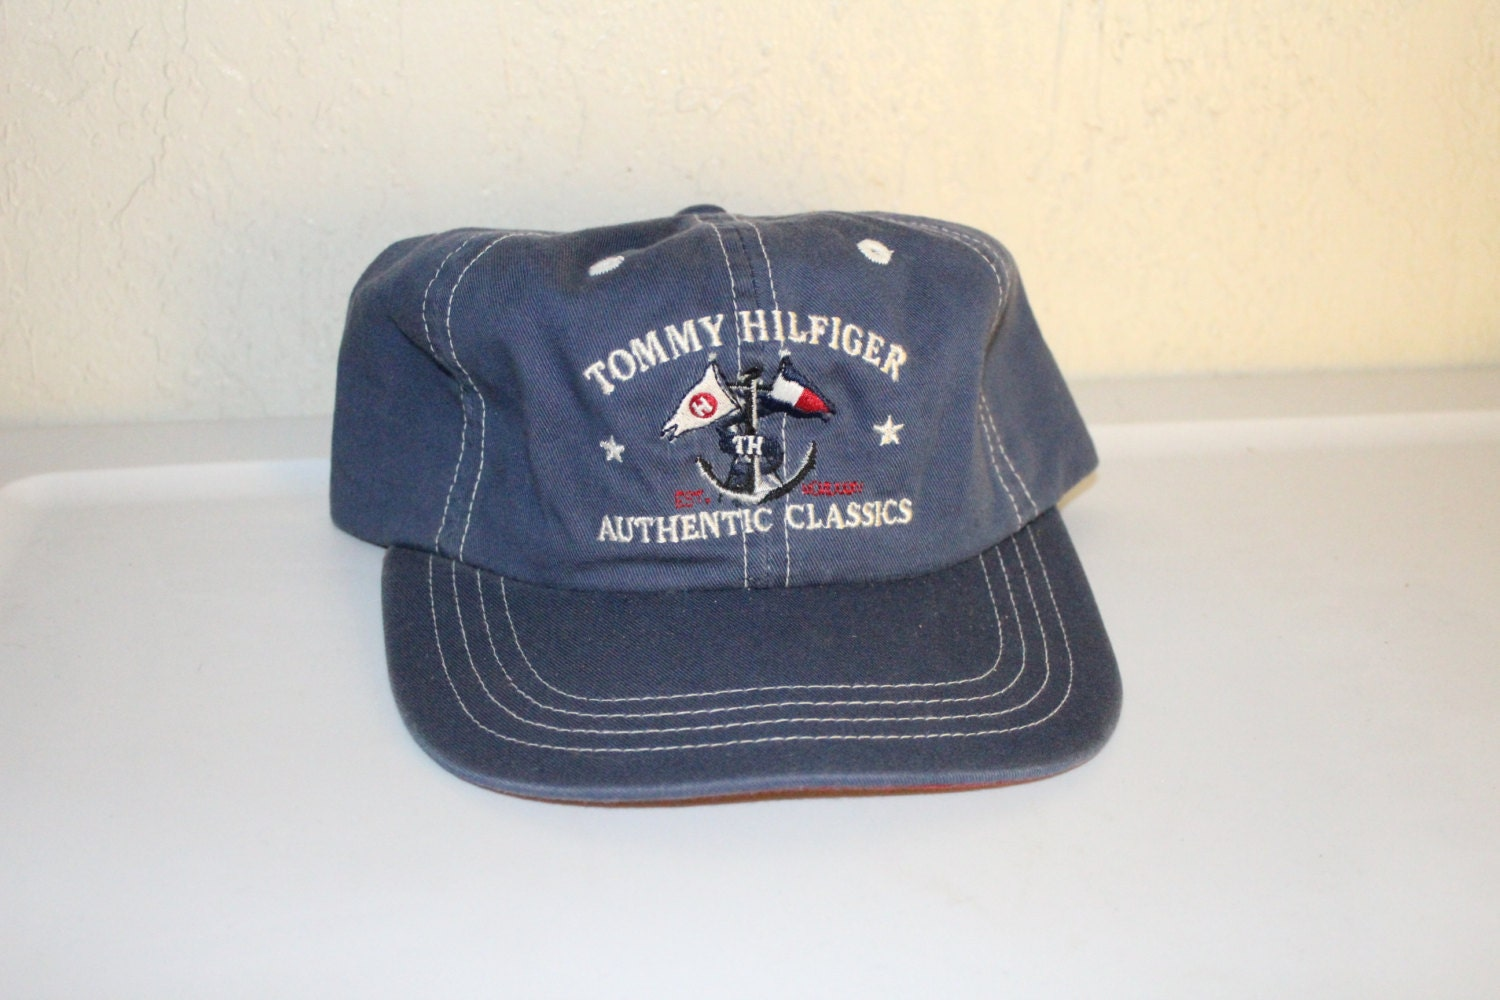 0d45c85b869 Vintage 90 s Tommy Hilfiger Authentic Classic Strapback Hat by Tommy  Hilfiger